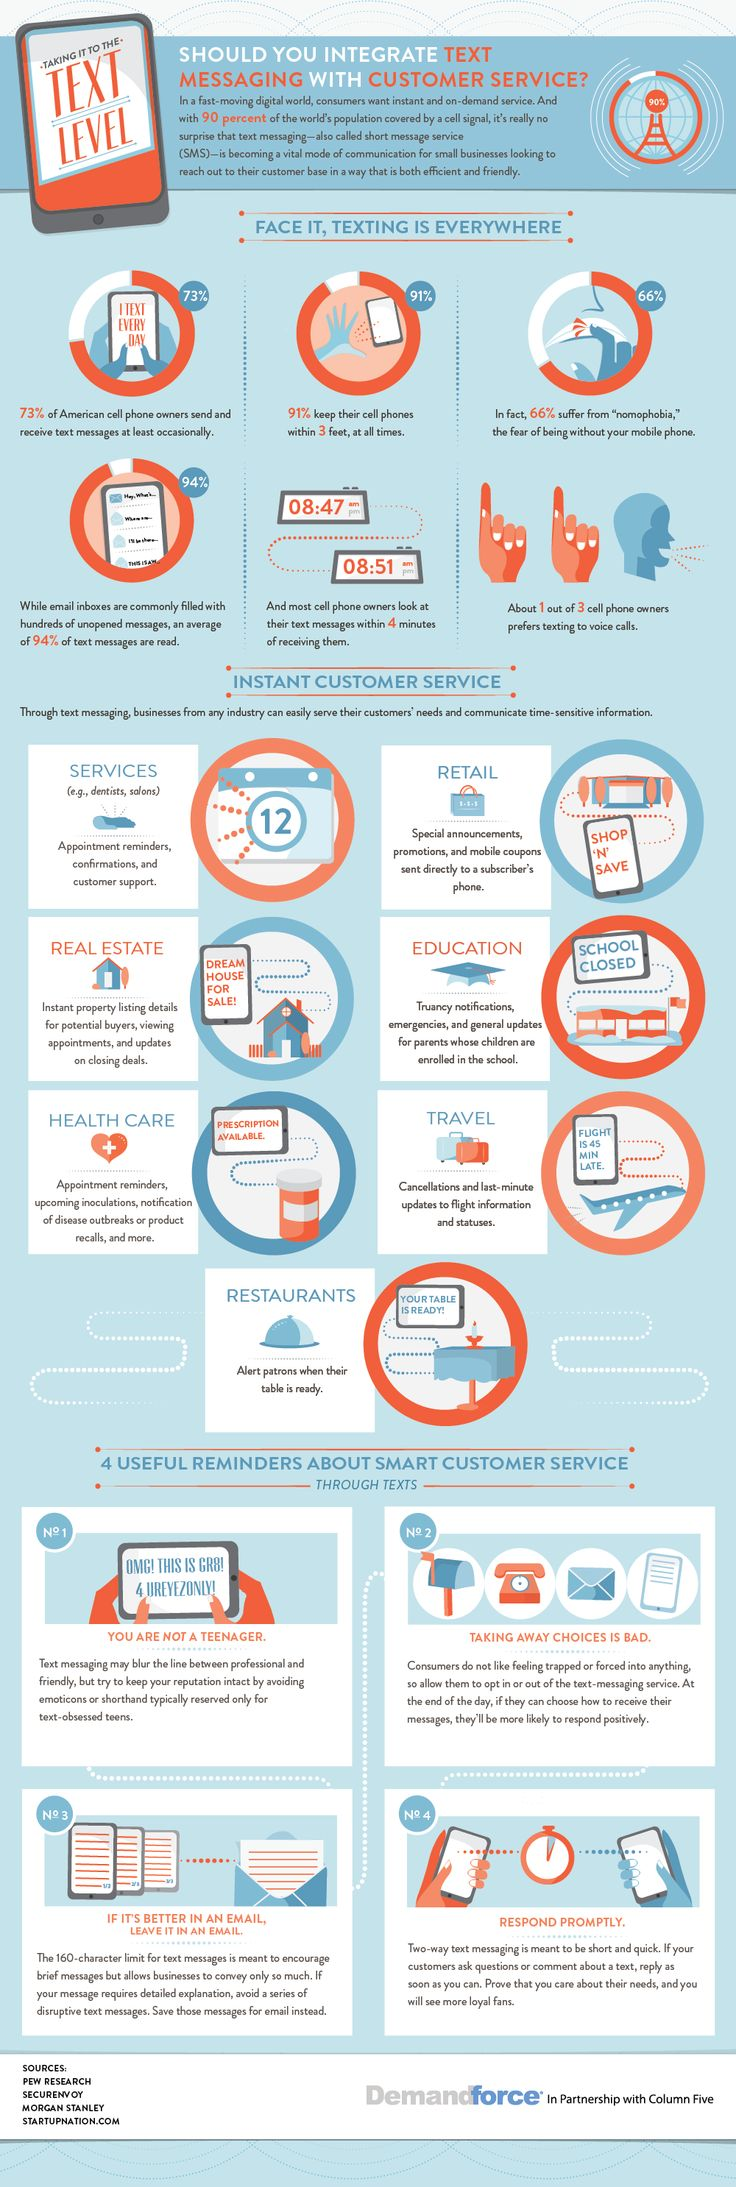 Taking It to the Text Level: Should You Integrate Texting With Customer Service?   Visit our new infographic gallery at visualoop.com/